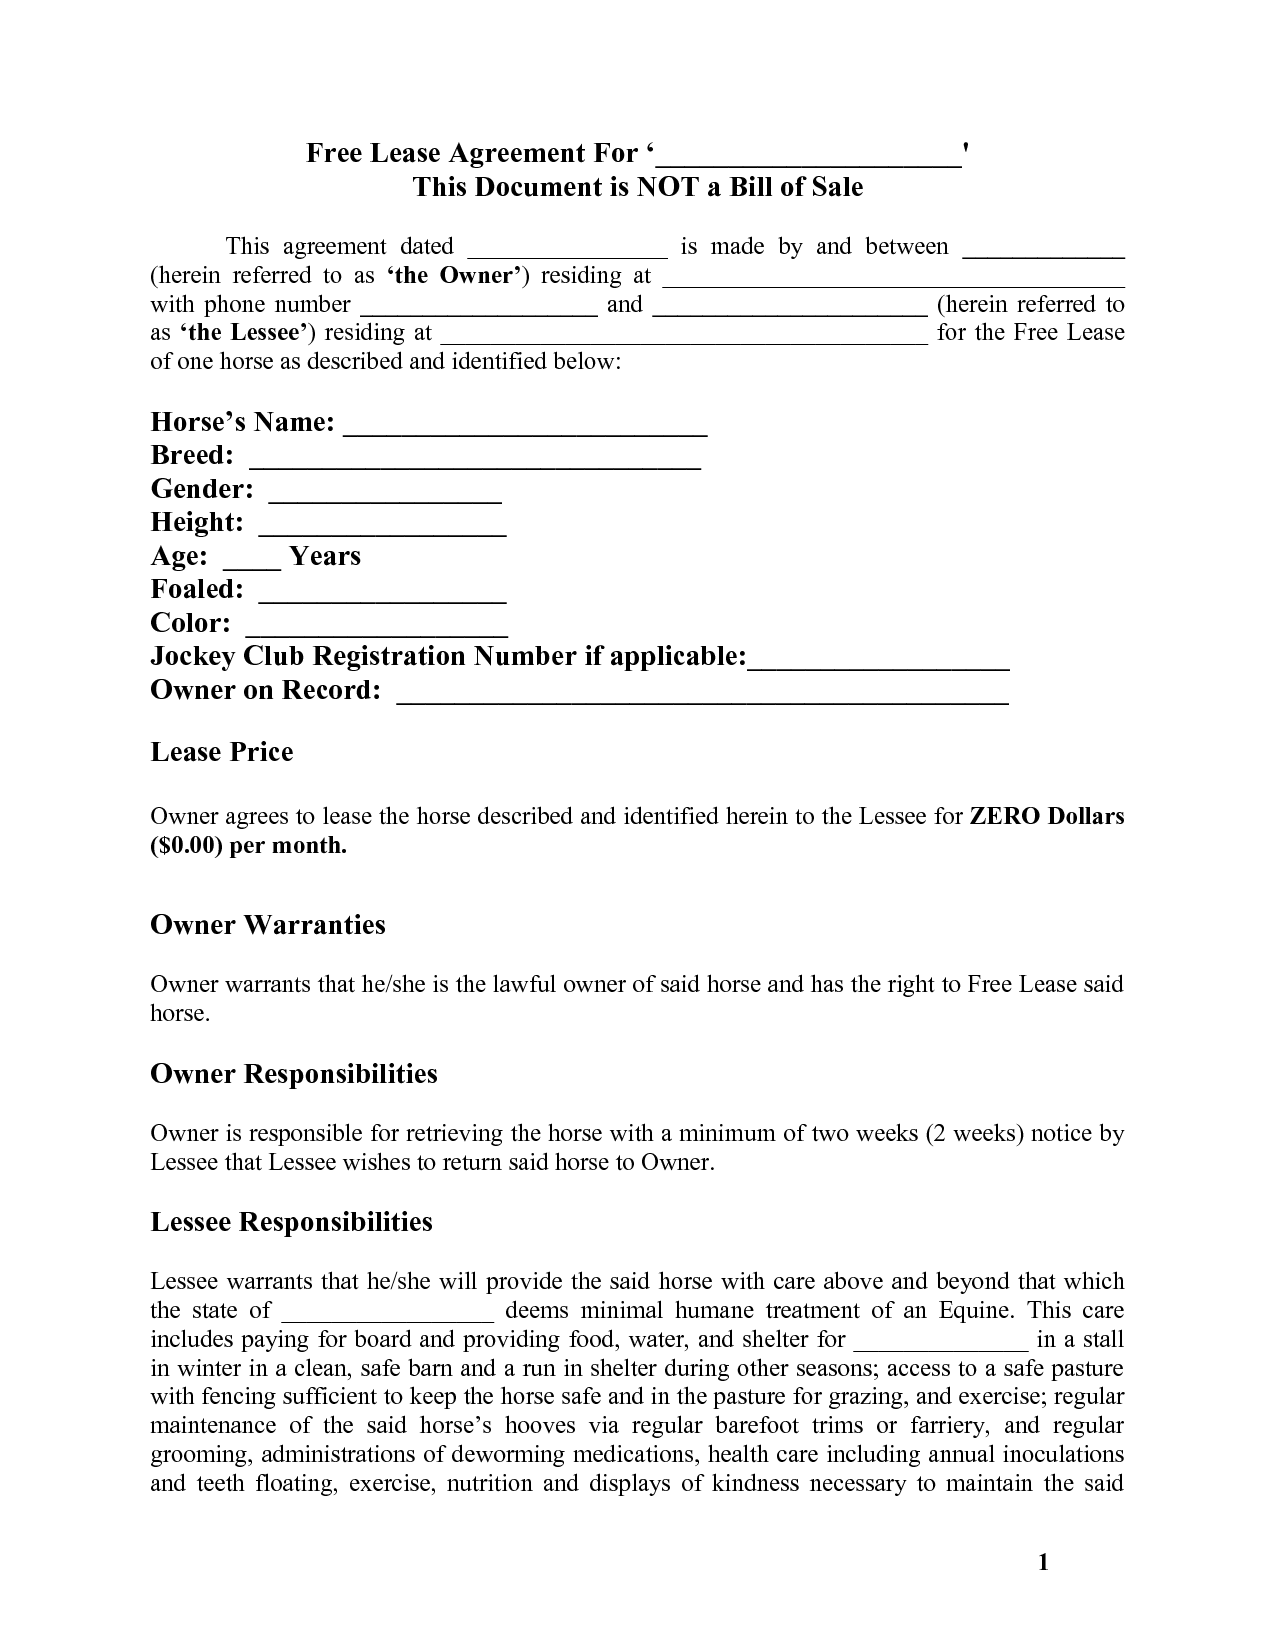 Horse Template Printable | Free Basic Lease Agreement  Blank Document Free